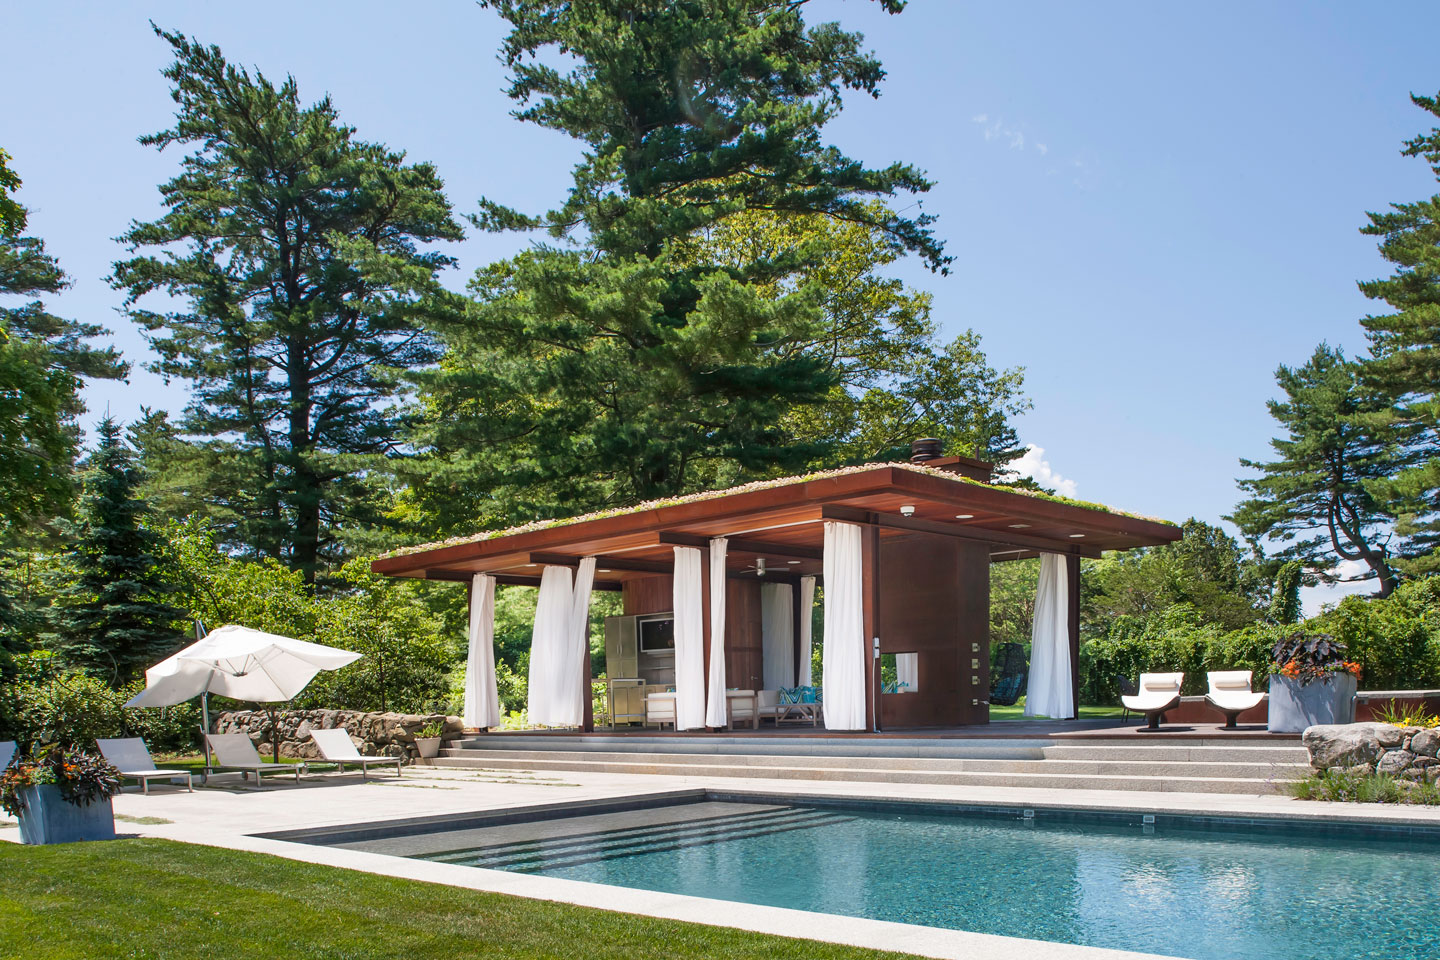 Poolhouse | Wilton, CT